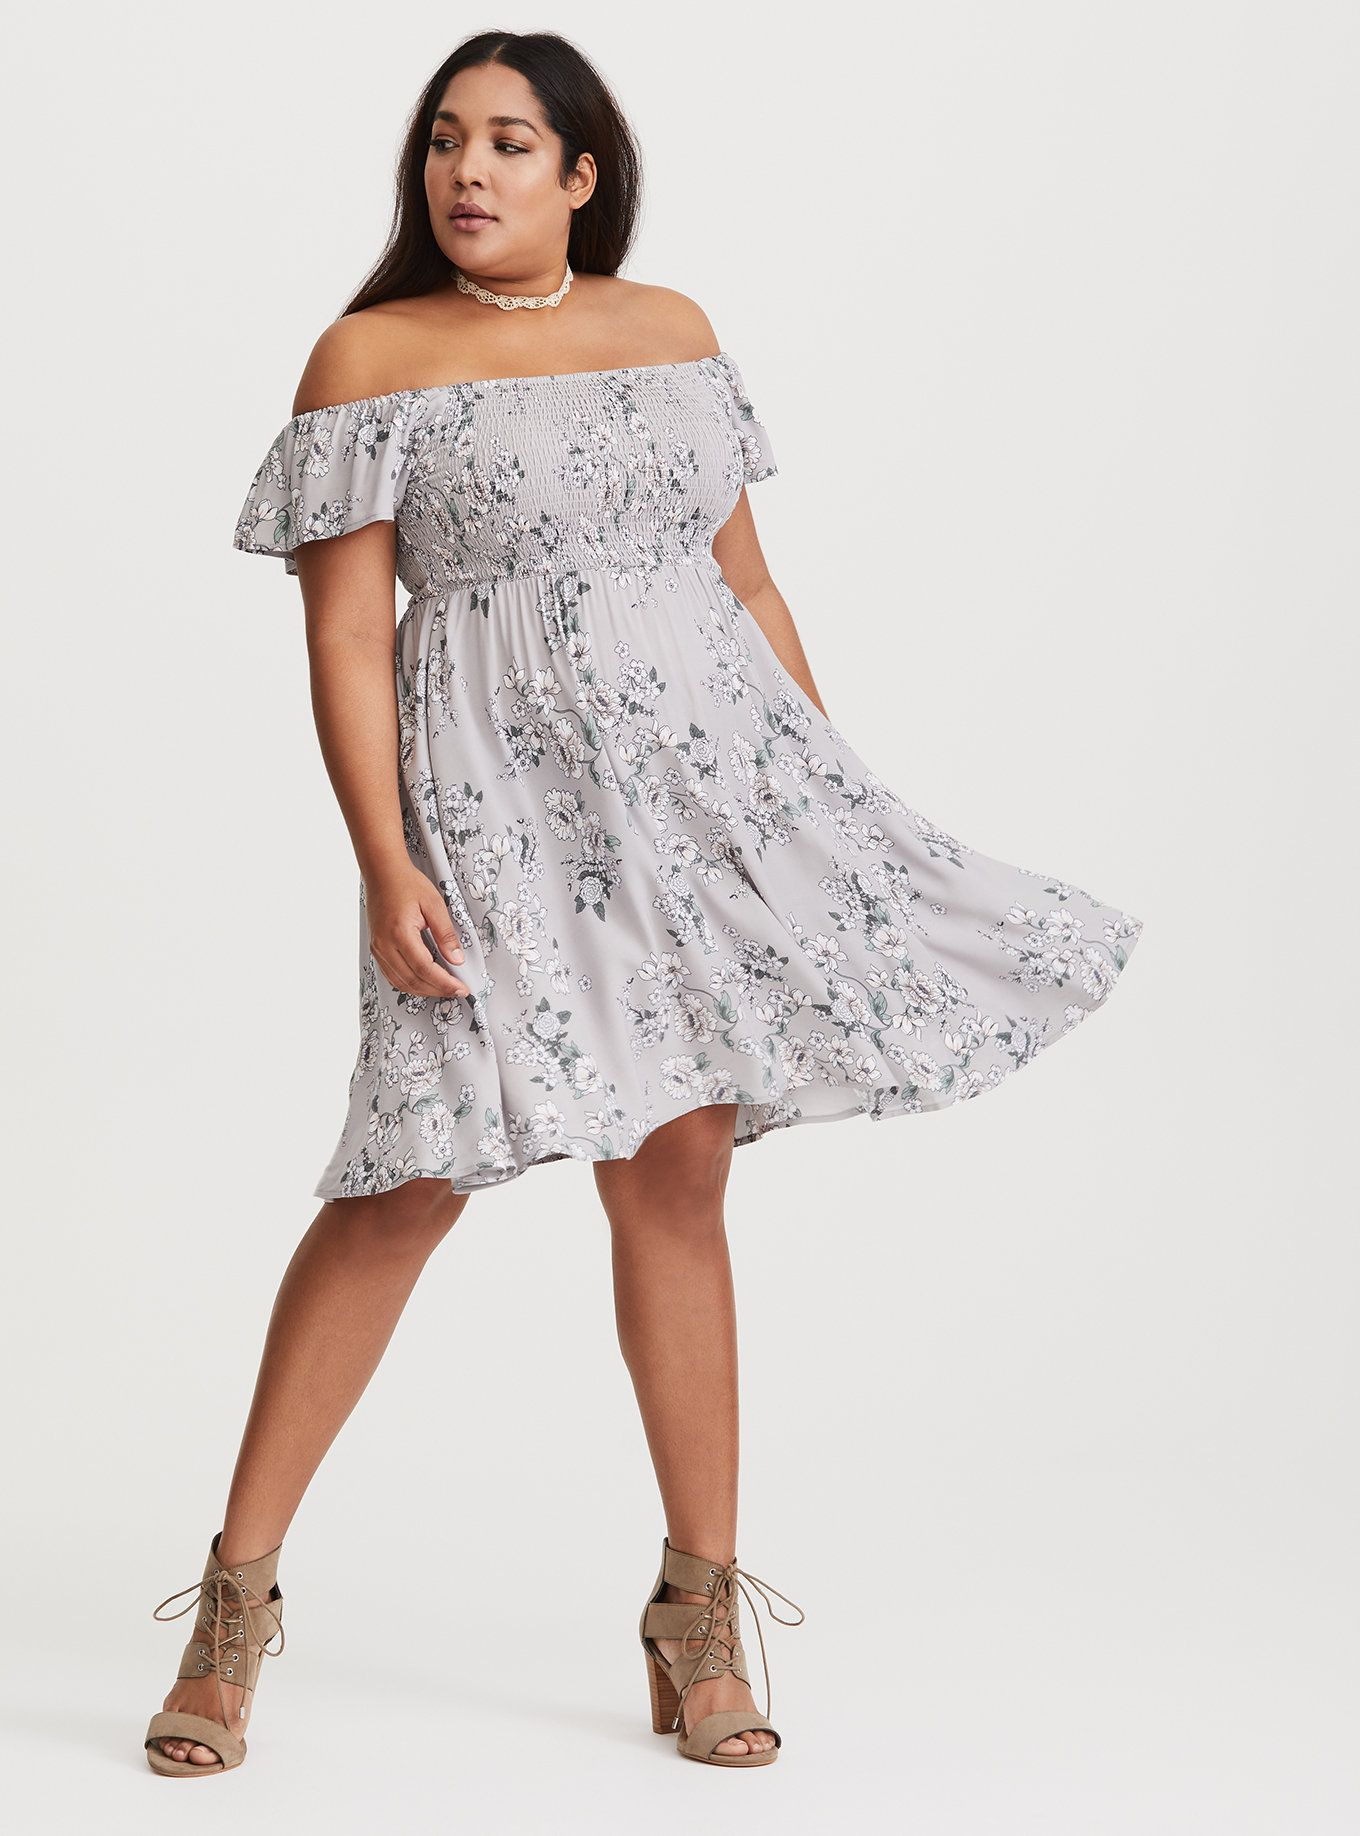 Grey floral smocked challis dress flutter sleeve perfect fit and